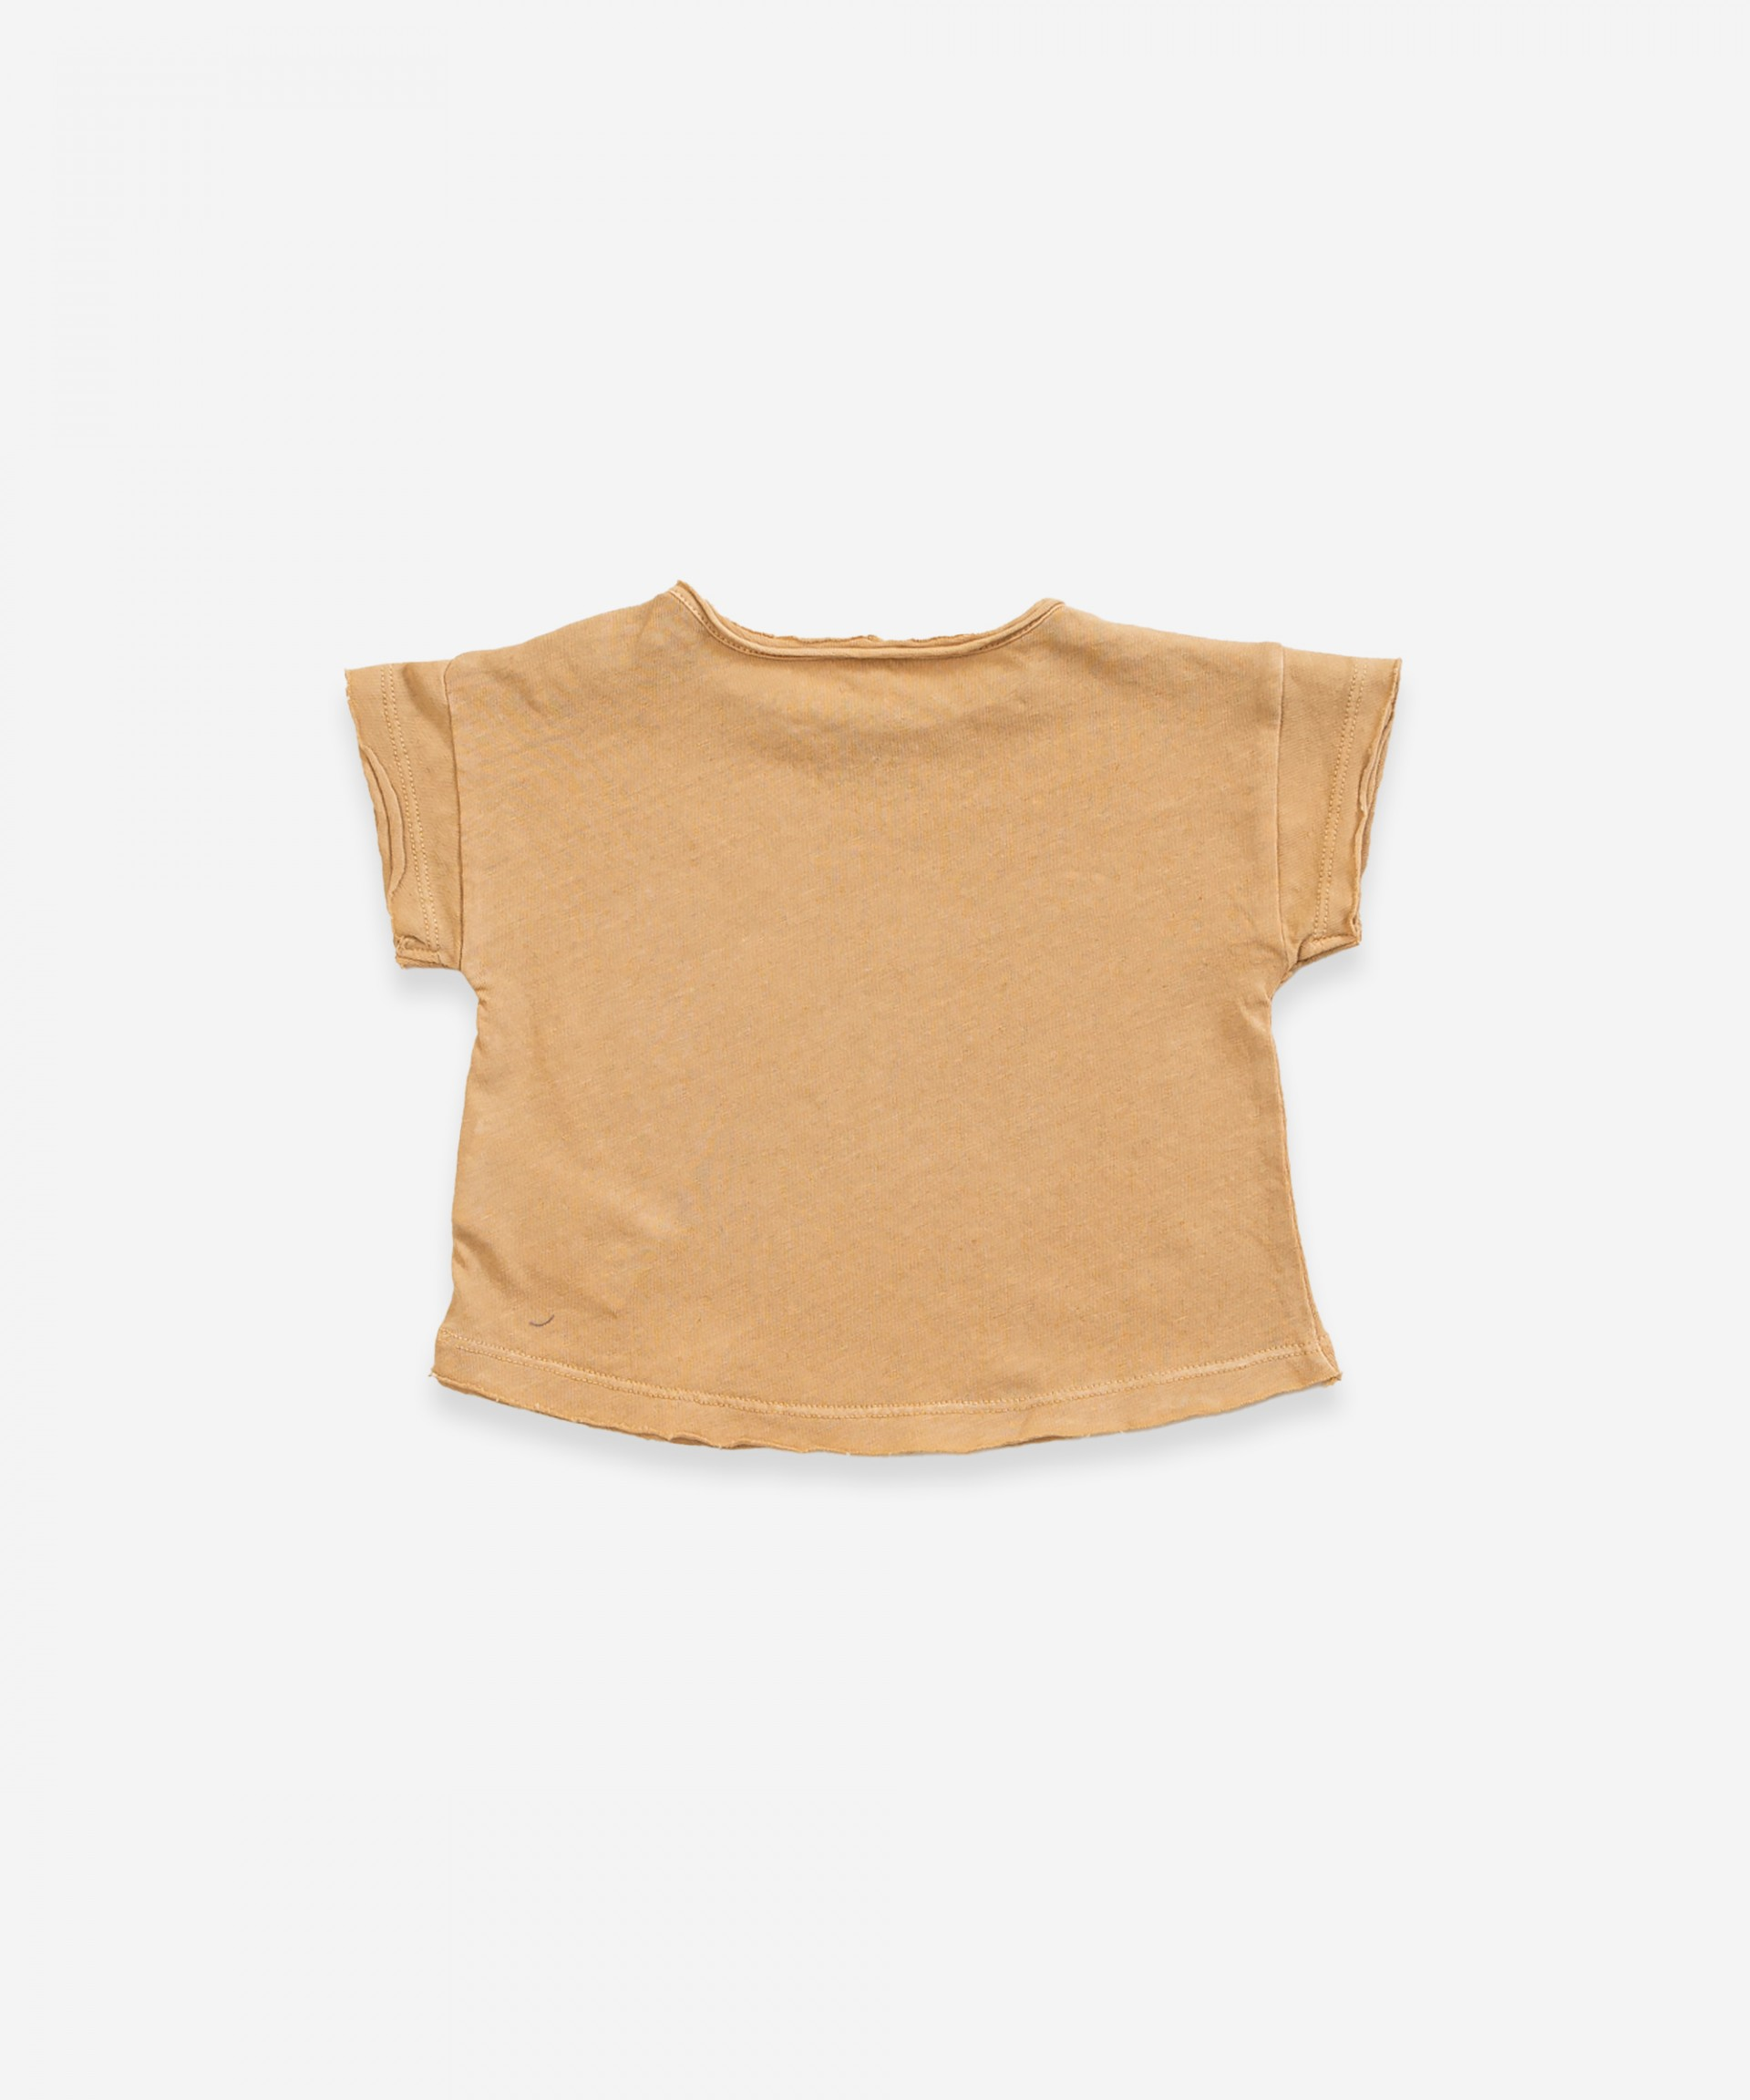 T-shirt in cotton-linen with opening on shoulder | Weaving